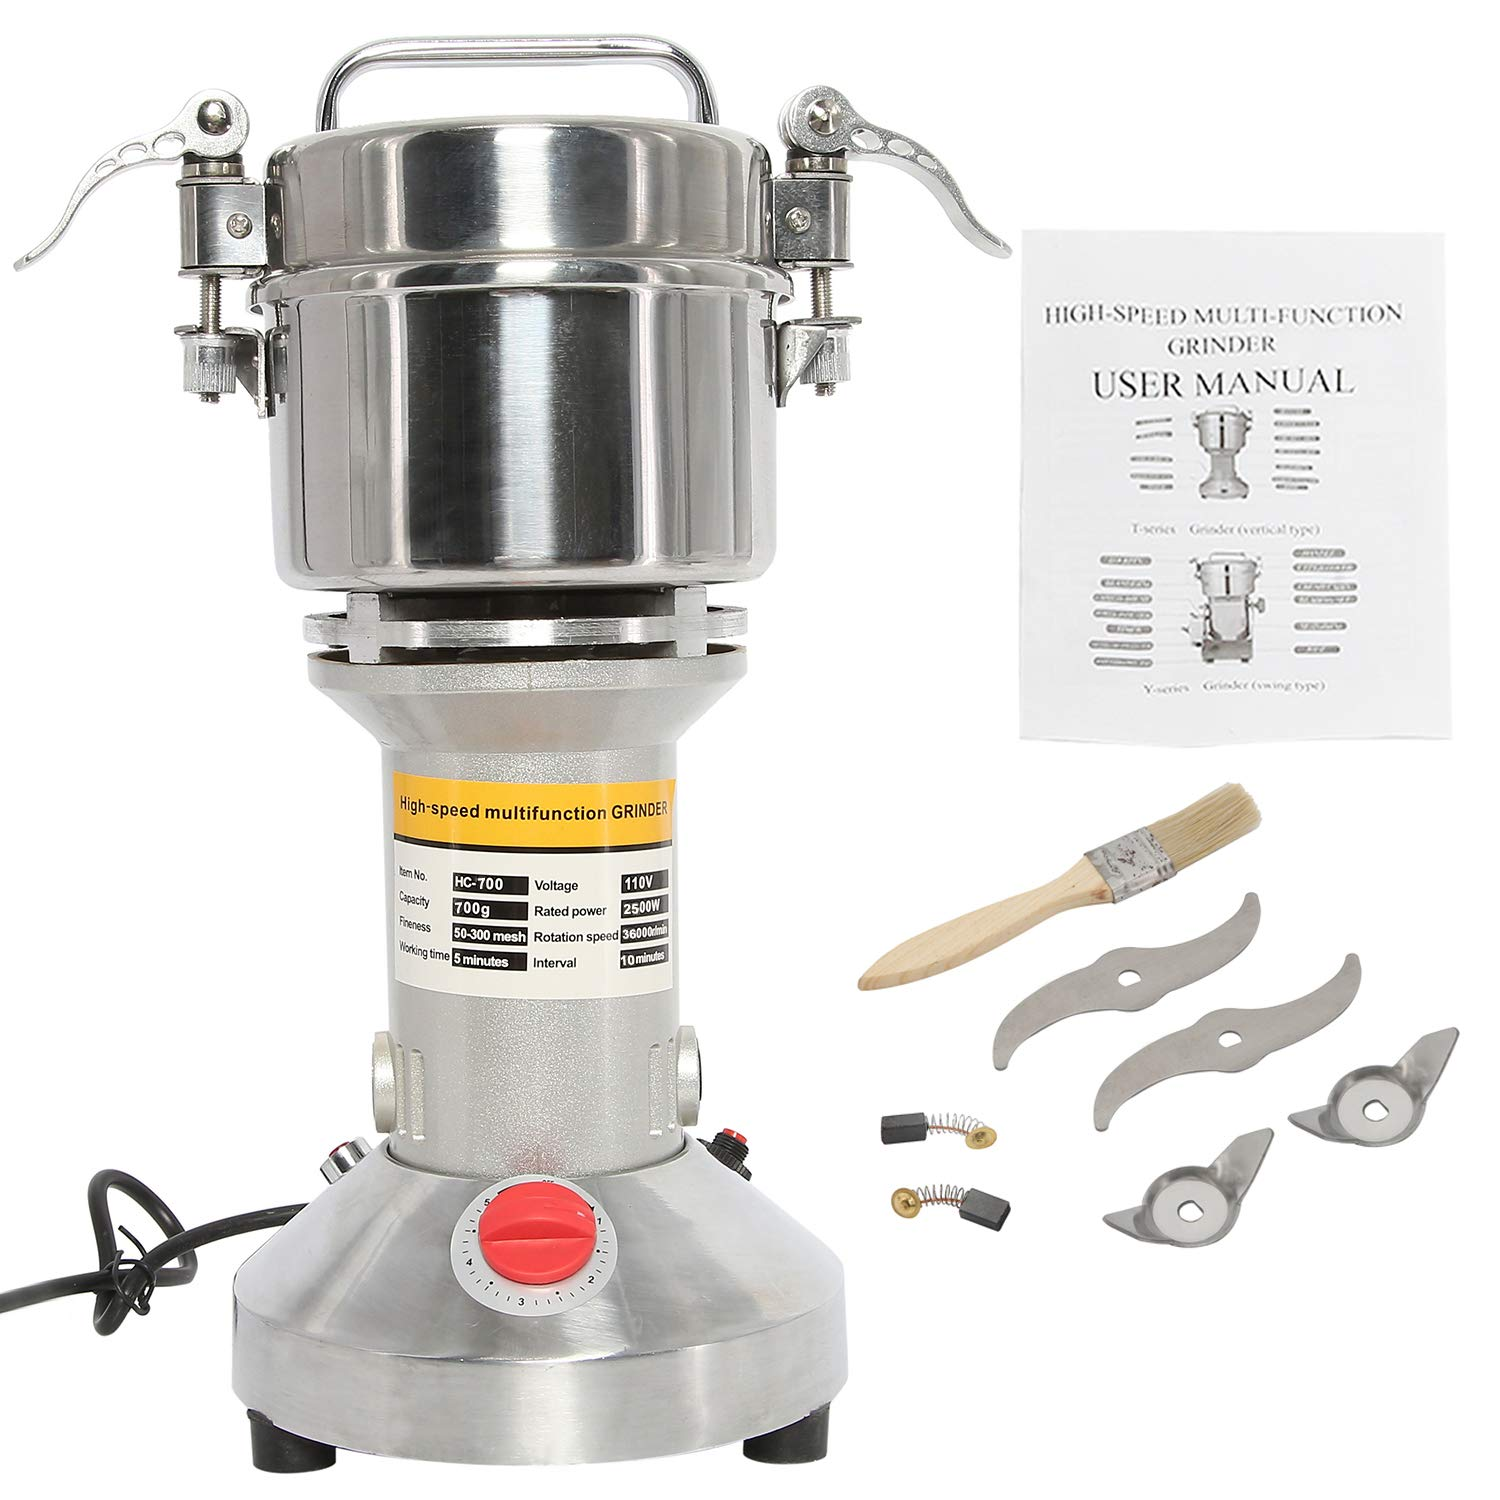 HYDDNice 700g Grain Mill Grinder 2500w 50-300 Mesh 36000RPM High Speed Electric Stainless Steel Grinder Spice Herb Cereals Corn Flour Powder Machine Commercial Grade by HYDDNice